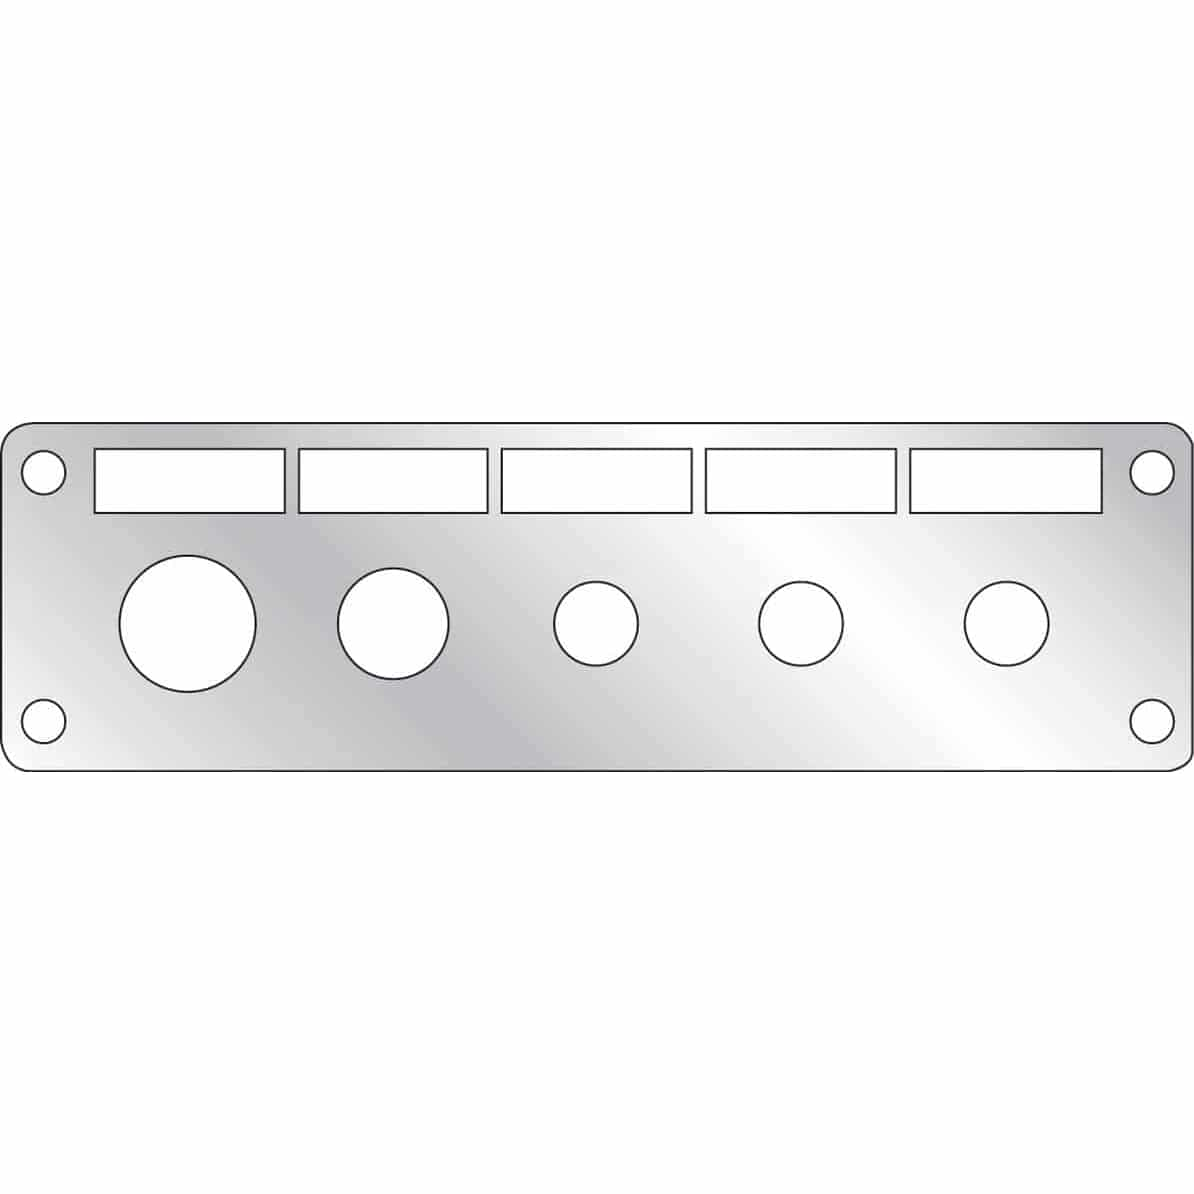 freightliner stainless steel ignition switch panel cover. Black Bedroom Furniture Sets. Home Design Ideas